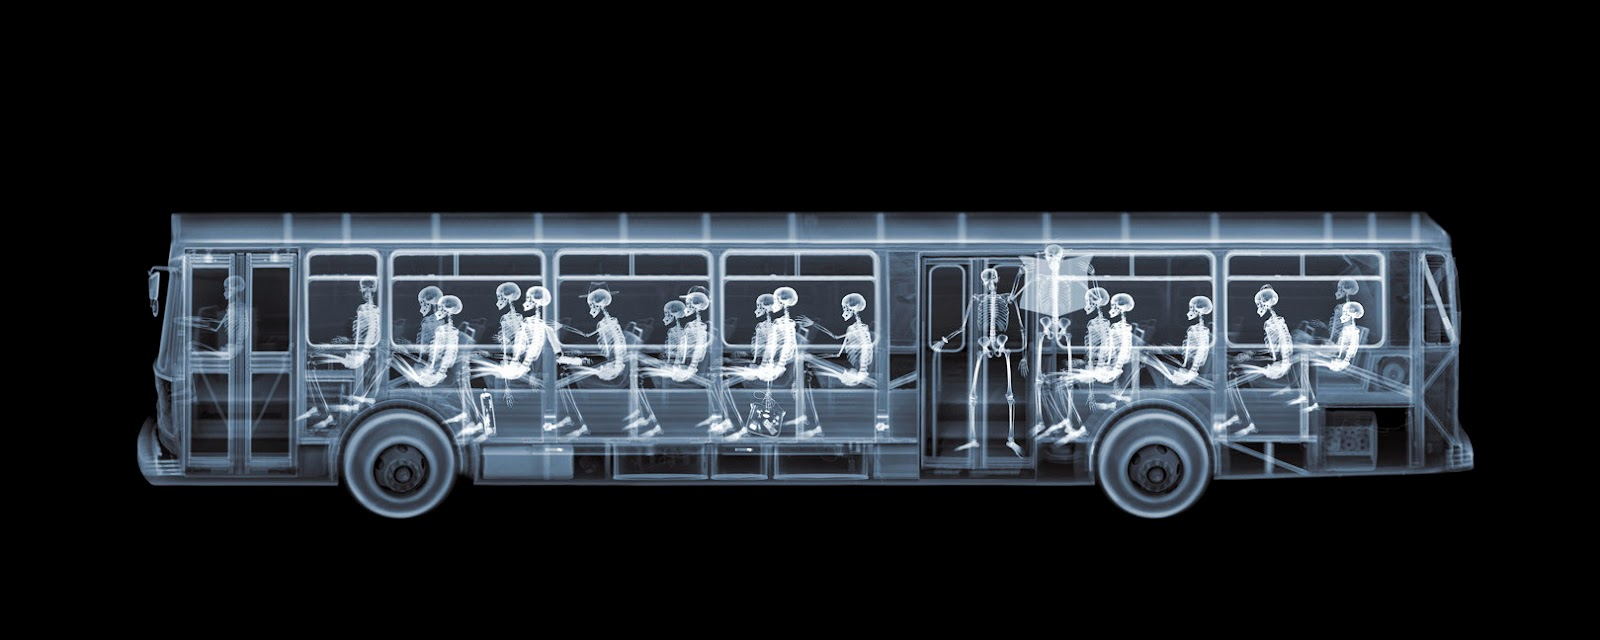 03-Bus-Nick-Veasey-X-ray-Images-Mechanical-Musical-www-designstack-co